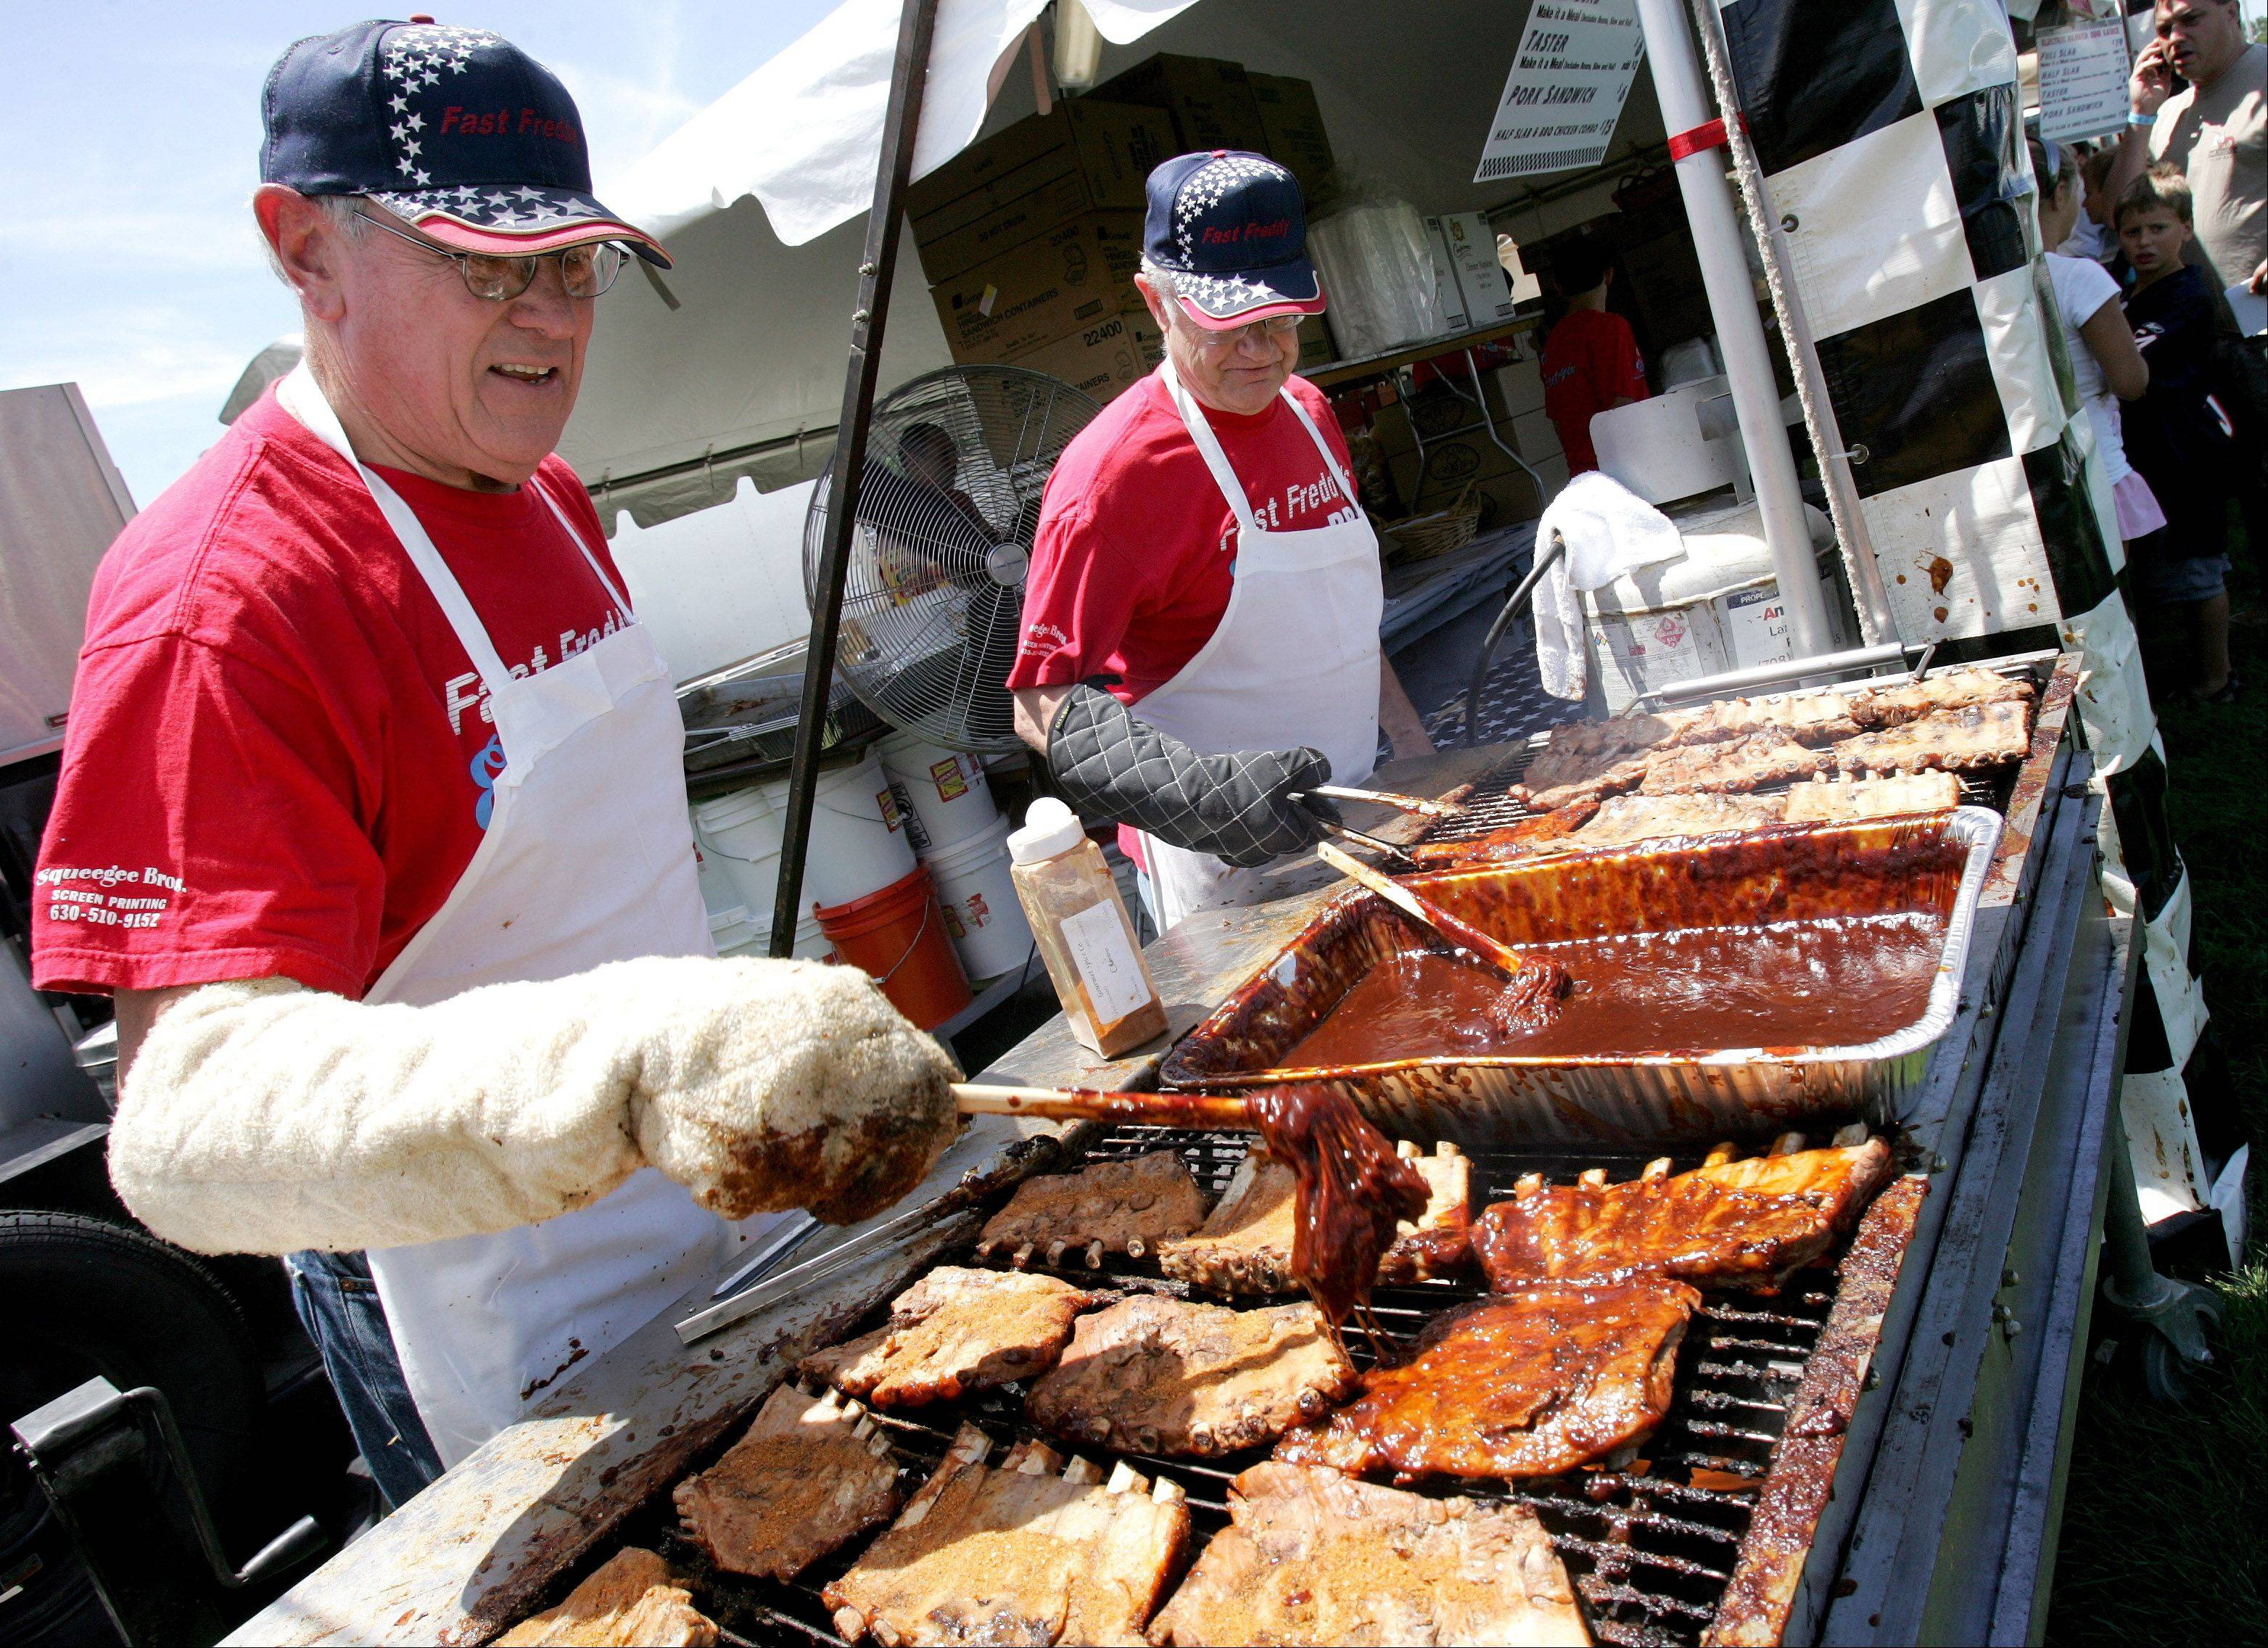 The Naperville Exchange Club's Ribfest is one of the suburbs' biggest and most popular July 4 festivals.